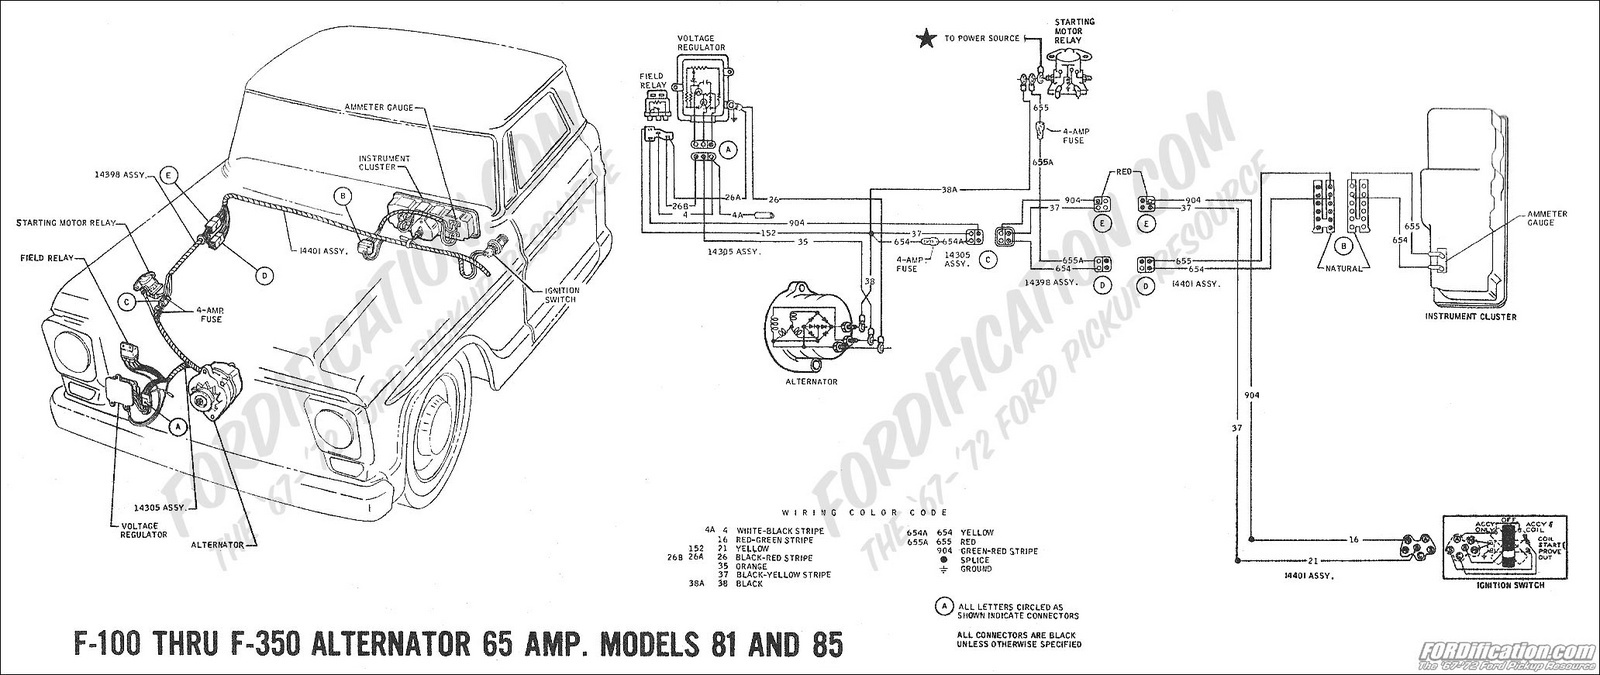 1969 F100 Wiring Diagram Third Level Easy For 1974 Harley Davidson Ford Trusted 1961 Color 1968